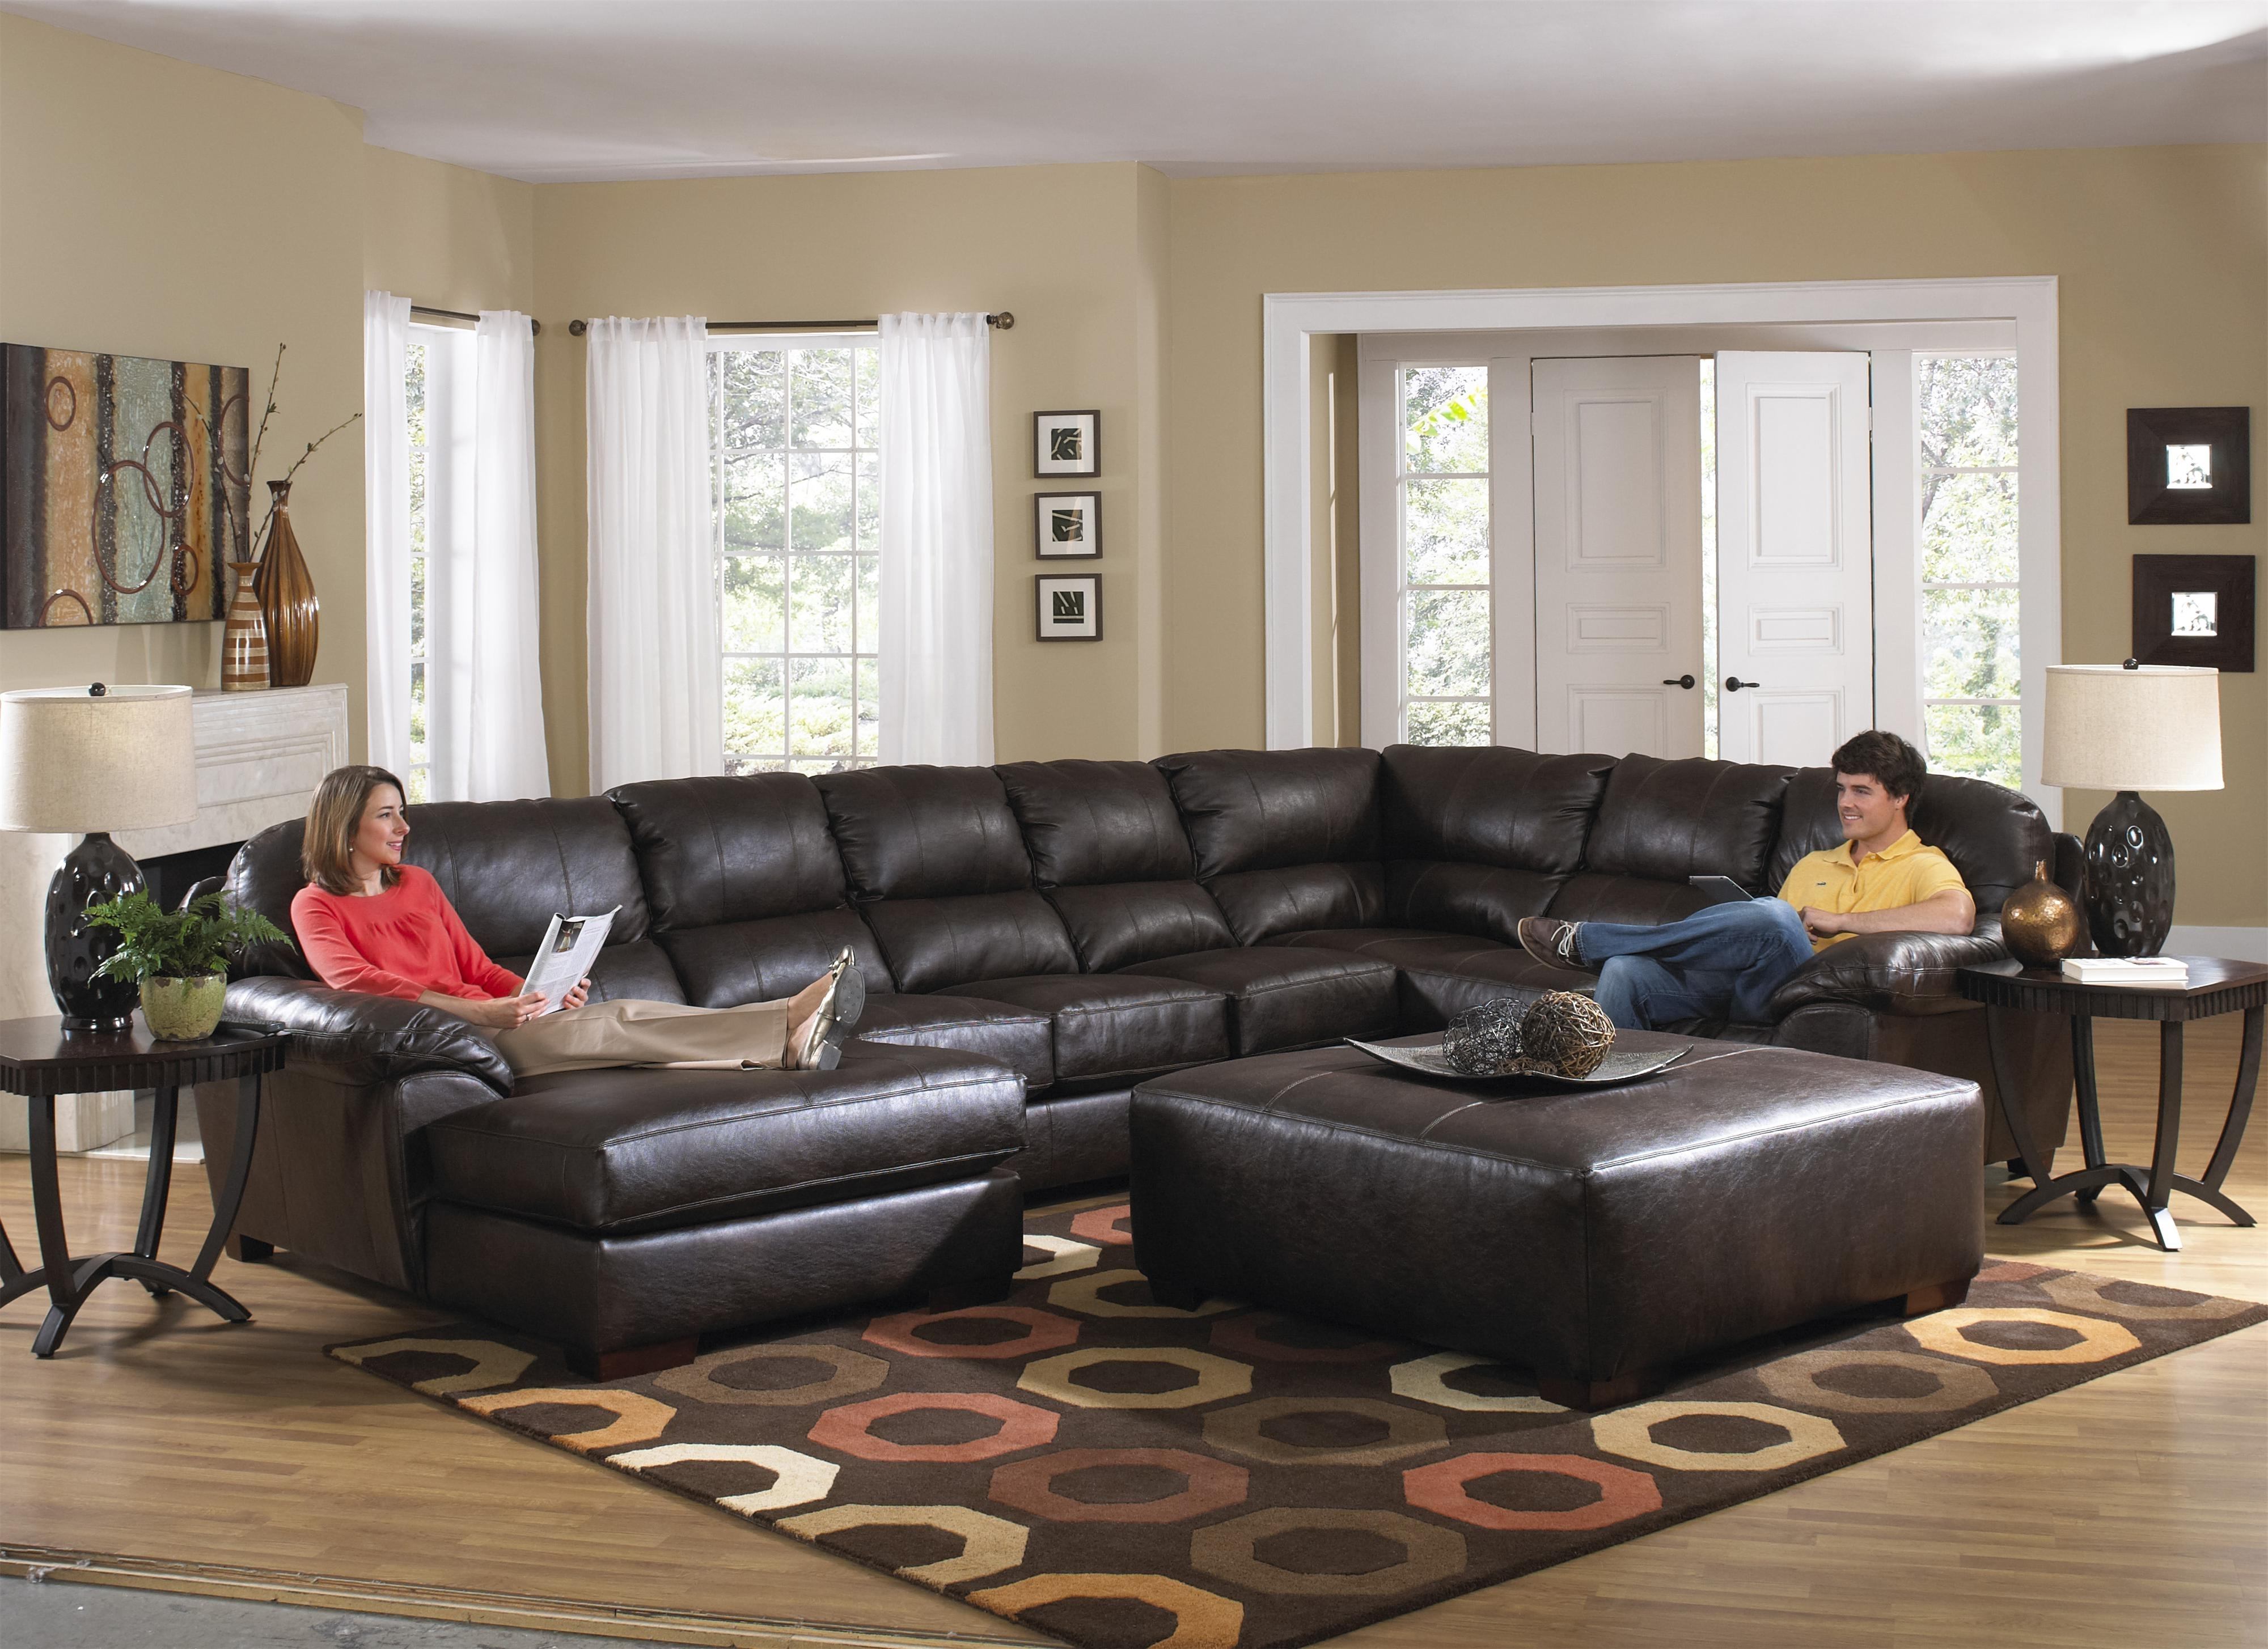 Sectional Couches With Large Ottoman Intended For Recent Oversized Couches Ashley Furniture Extra Deep Couch Oversized (View 15 of 20)